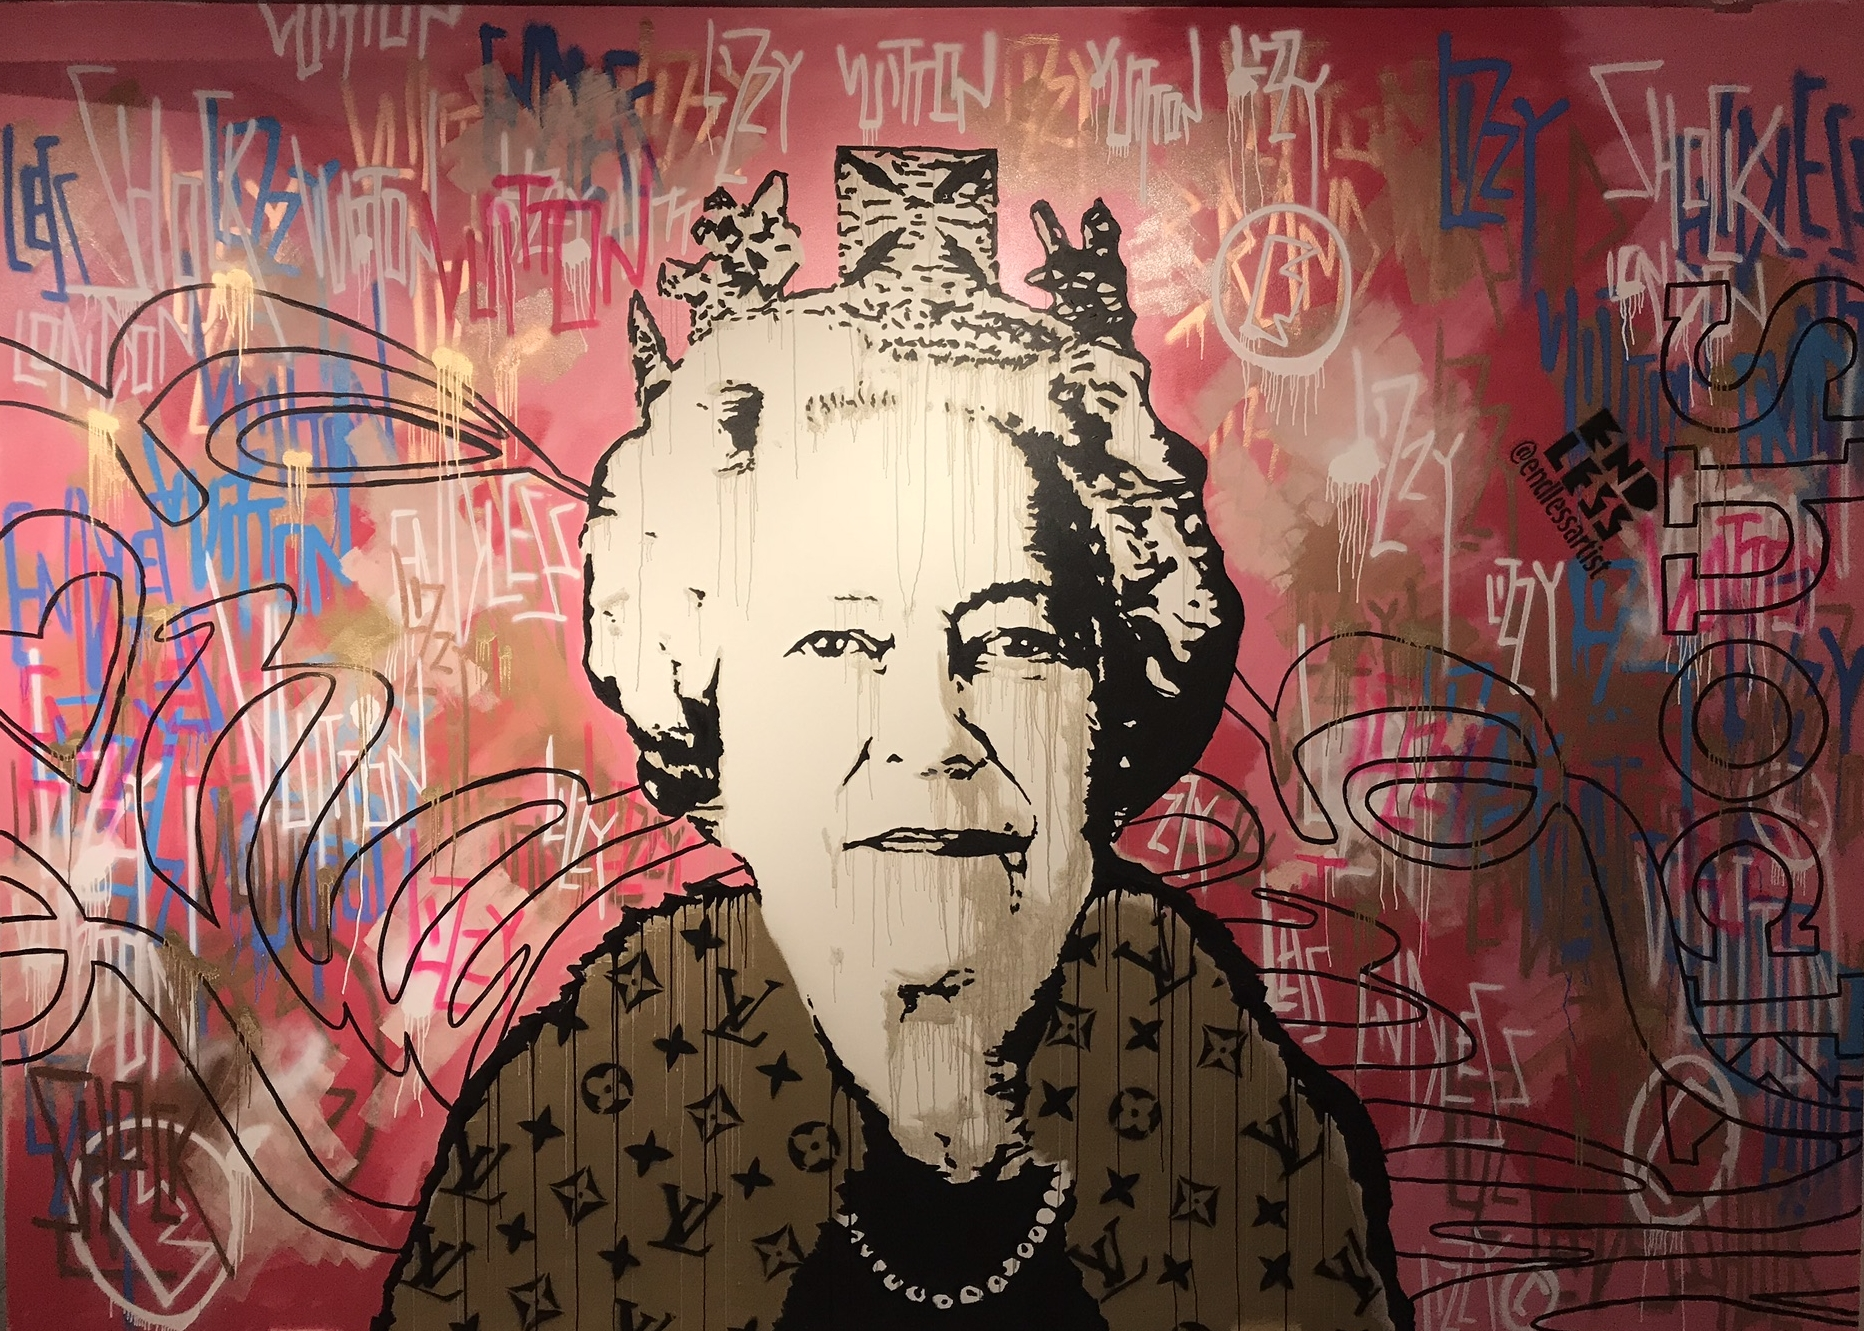 Mural by Endless x ShocK - Endless the Artist has created an exclusive wall mural inside the Chelsea Harbour Design Centre, which will feature as part of a Shock London showcase.The mural presents one of Endless's most iconic works, the Lizzy Vuitton, which was created in honour of England's longest reigning monarch, Queen Elizabeth.Lizzy is captured striking an imperious pose, draped in a luxurious fur collar embellished with the designer LV monogram. With the subject regarded somewhat as a fashion icon in her own right, Lizzy Vuitton offers a portrayal of Her Majesty that's fit for the modern age spectator.This mural is a must see. Given its scale, finish and use of vibrant drips of gold and pink paint, it is sure to bring a touch of warmth to these cold Spring days.